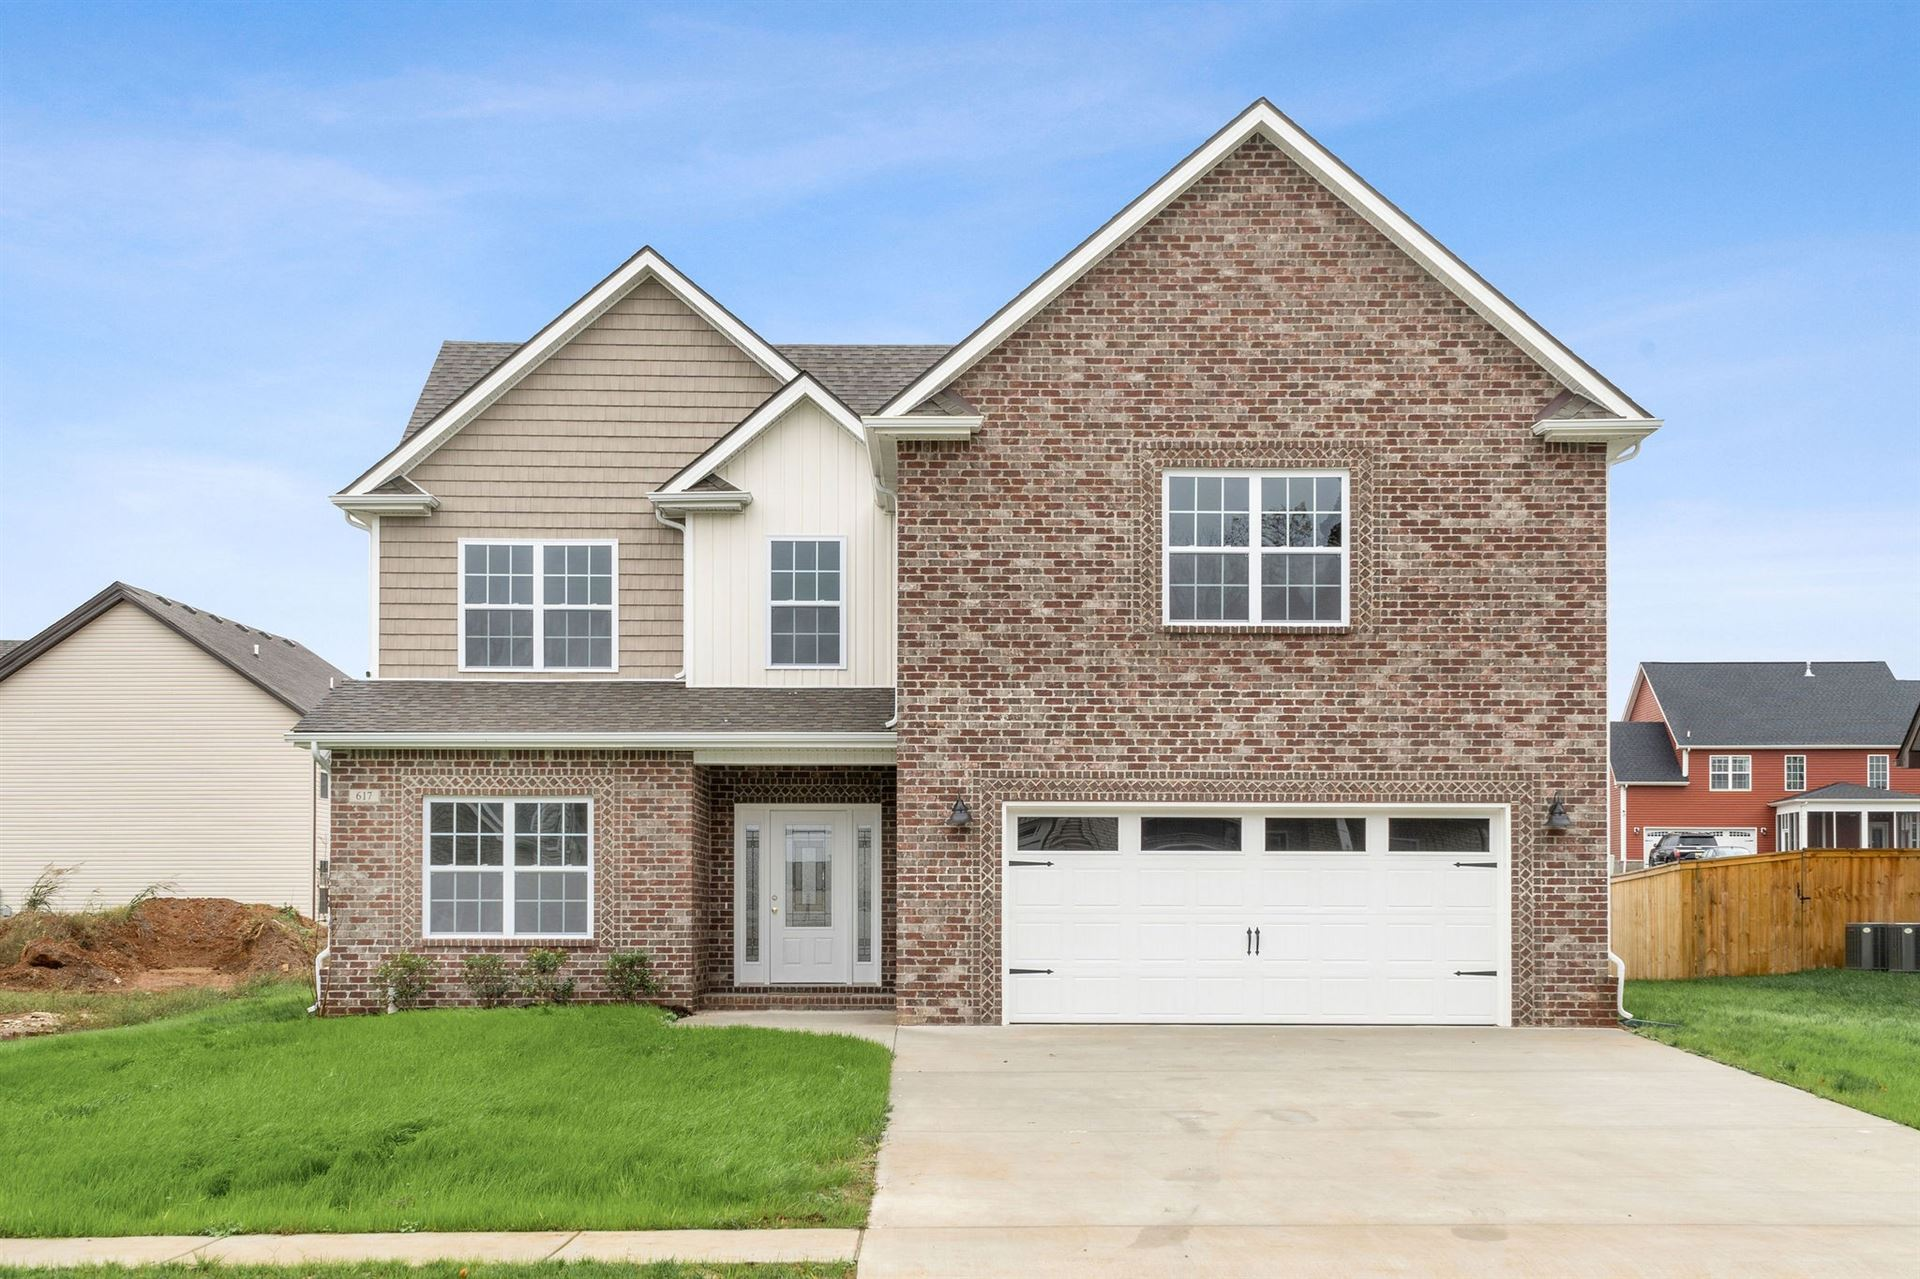 49 Reserve at Hickory Wild, Clarksville, TN 37043 - MLS#: 2185792